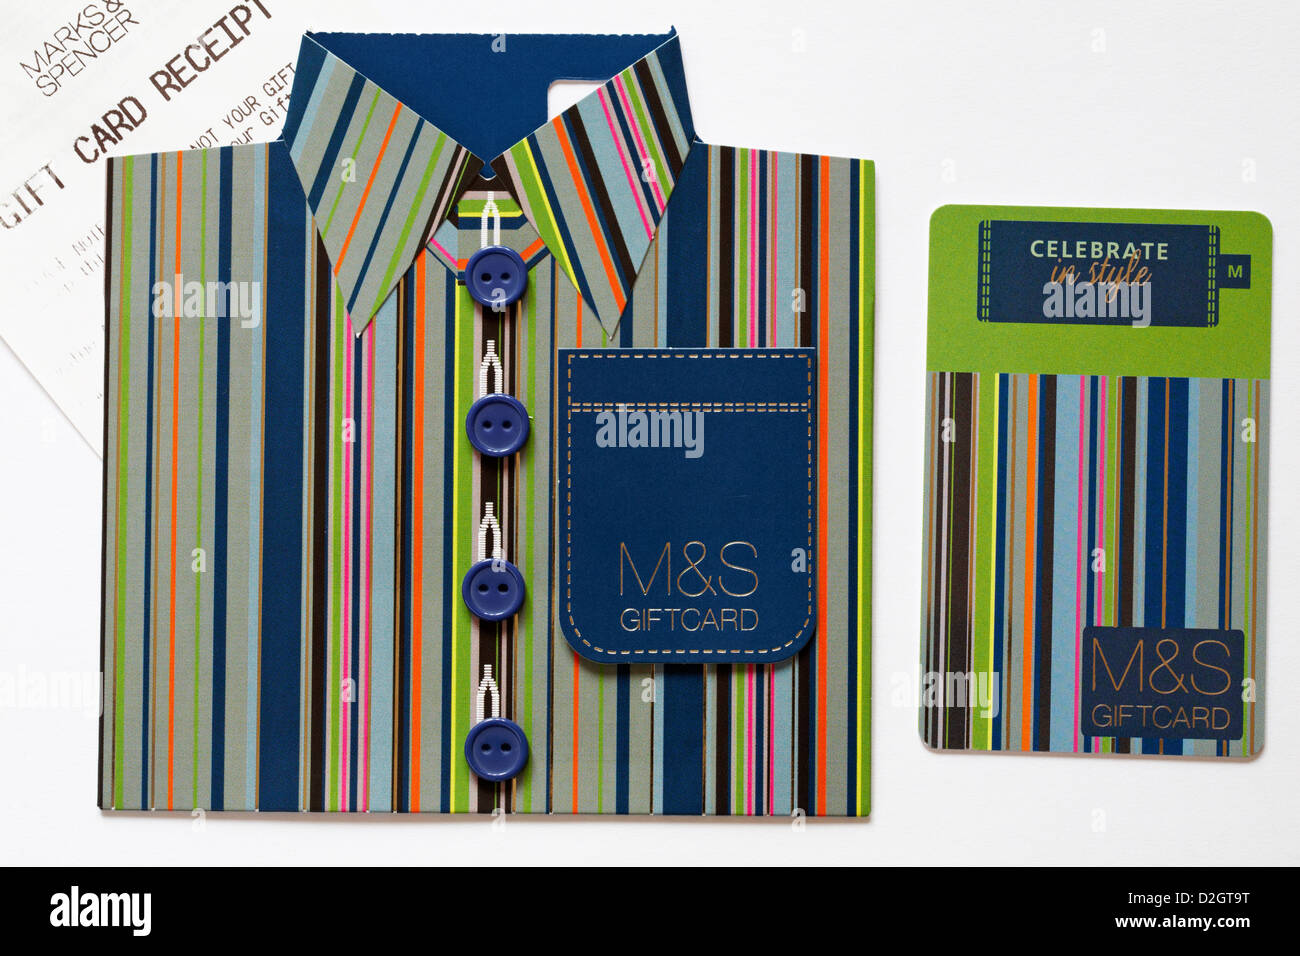 Celebrate in style with ms shirt giftcard with marks spencer celebrate in style with ms shirt giftcard with marks spencer gift card receipt set on white background kristyandbryce Image collections